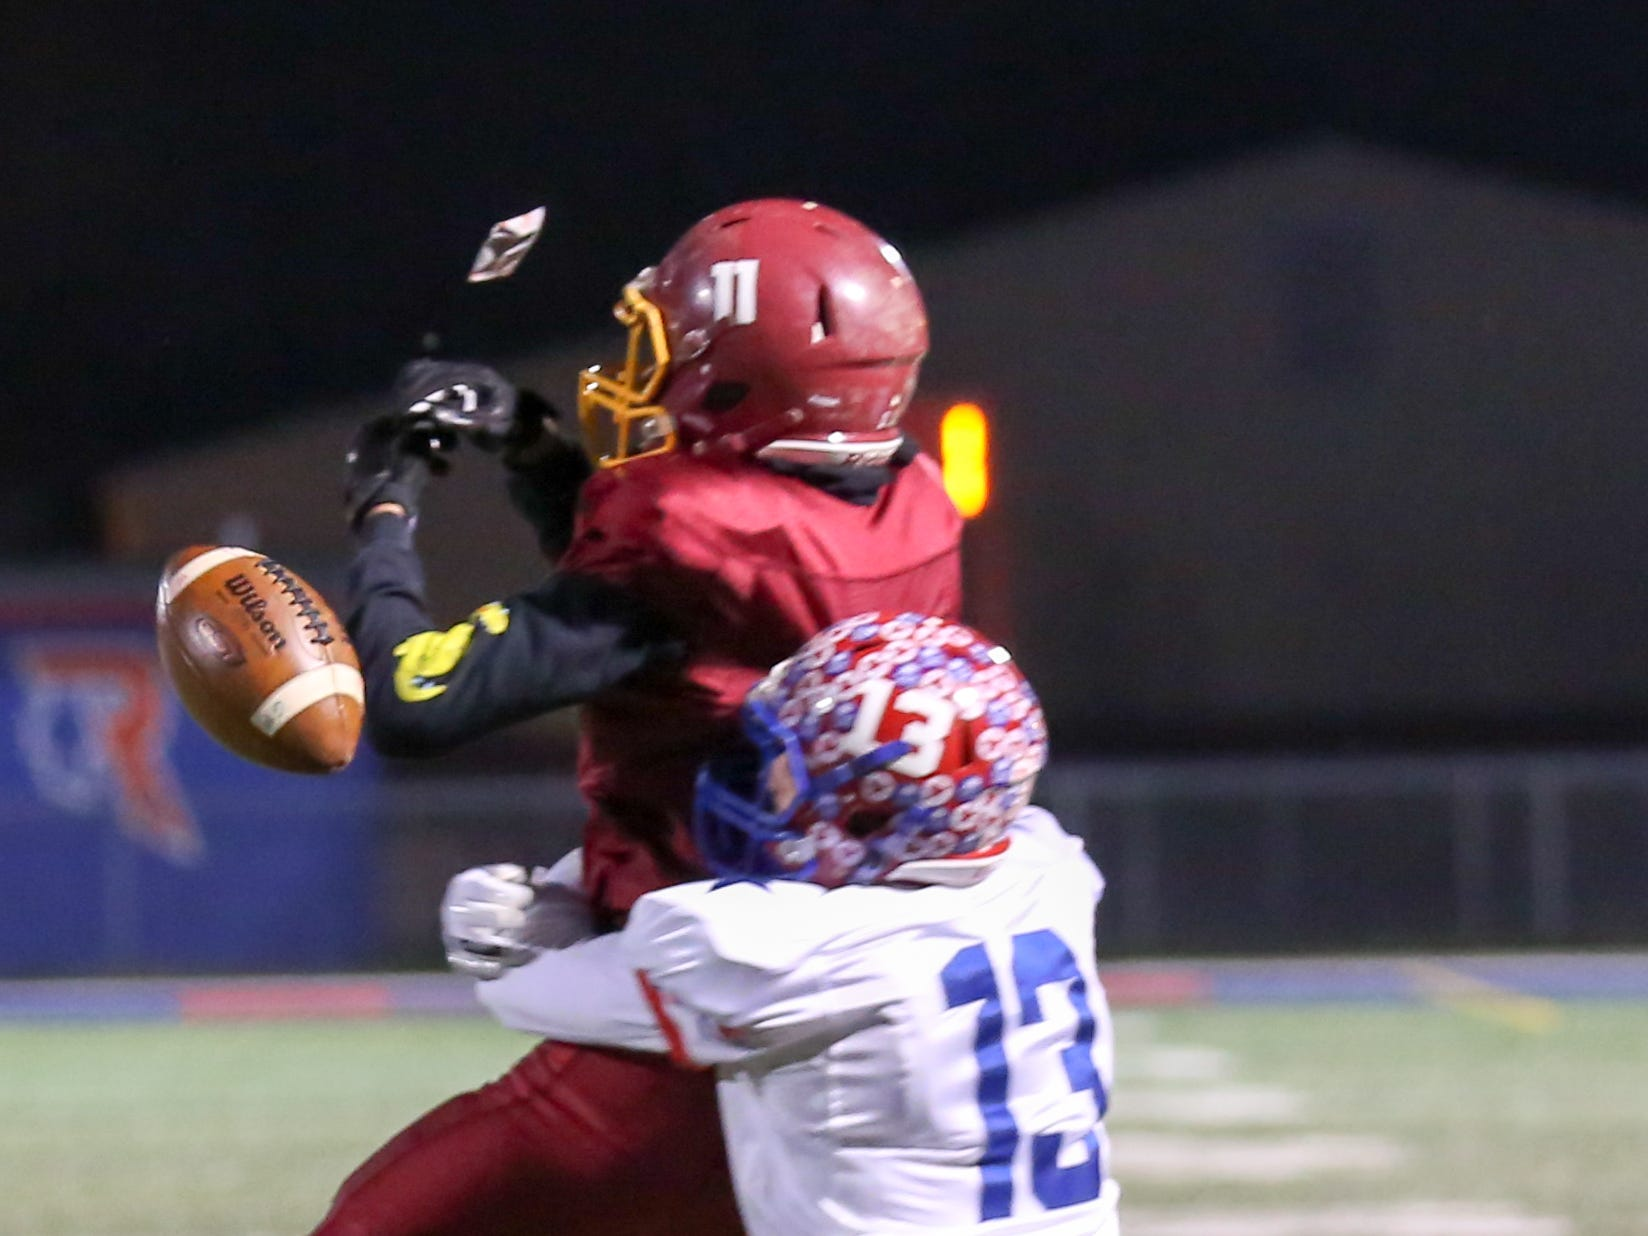 Scecina's Jaidon Barnes with coverage by Western Boone's Logan Benson (13) cannot hold on to the ball on this pass attempt during the first half of Indianapolis Scecina vs Western Boone High School varsity football in the Class 2A Regional Championship held at Roncalli High School, Friday, November 9, 2018.